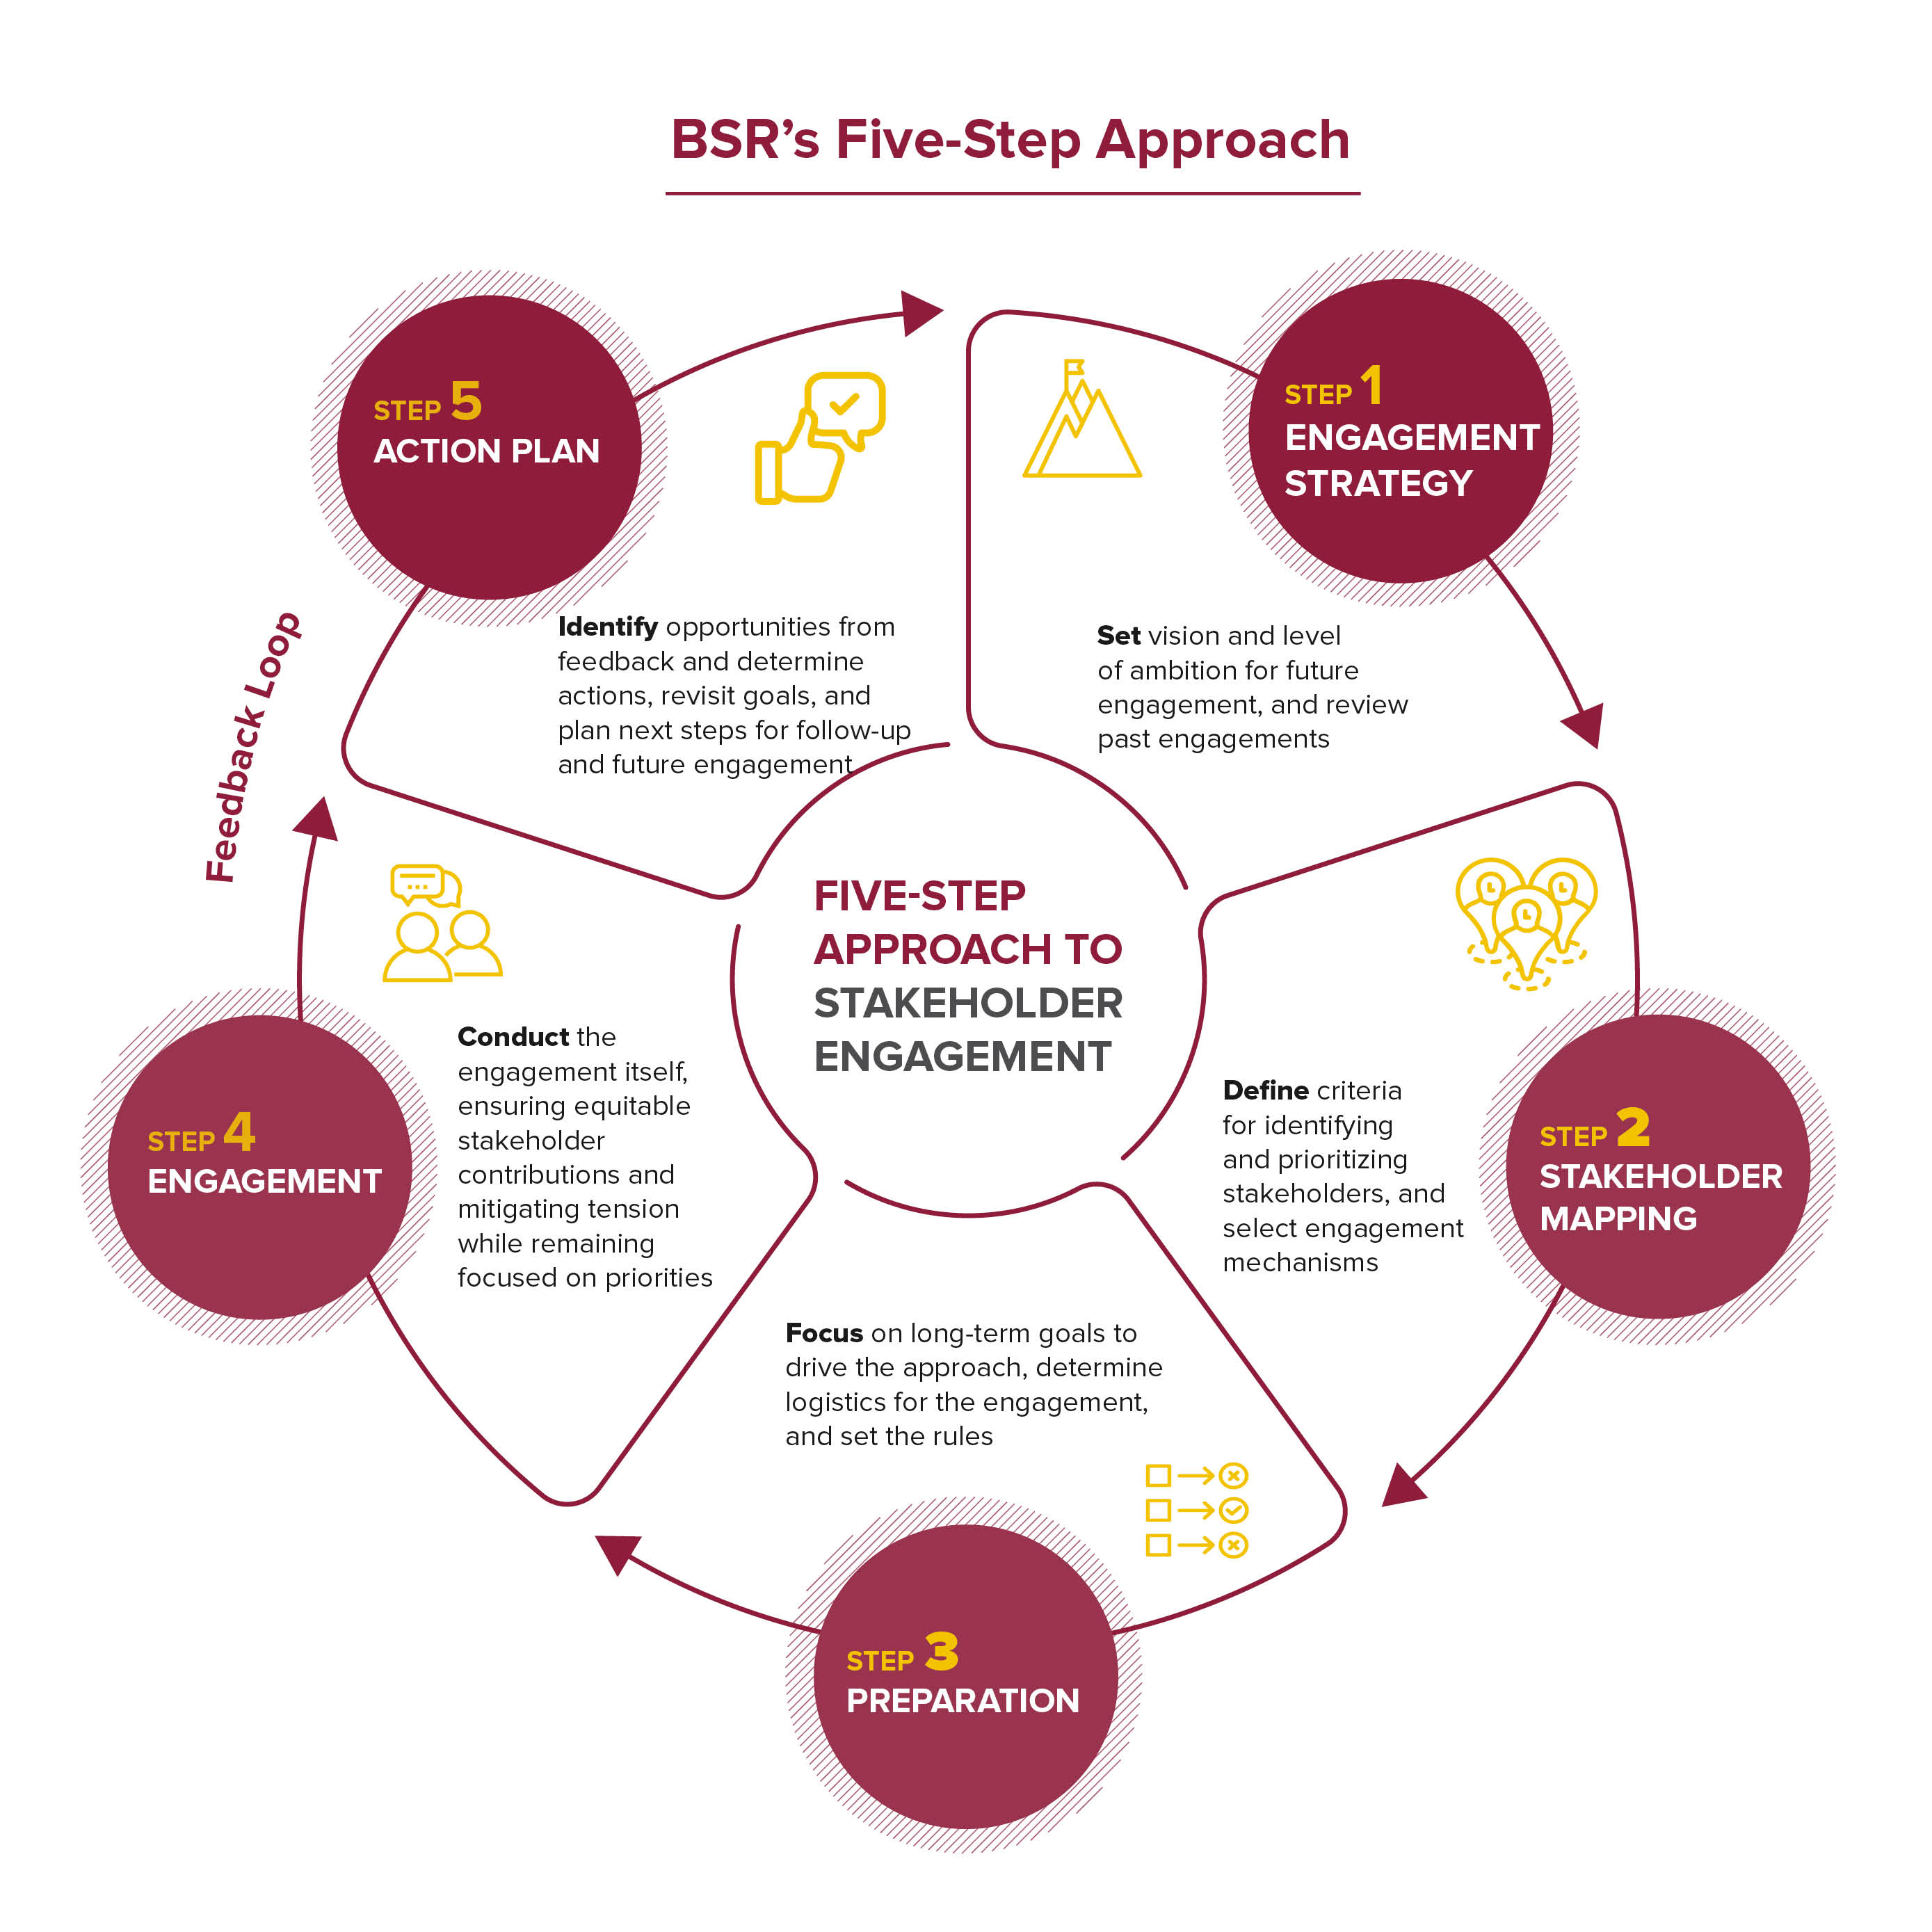 BSR's Five-Step Approach